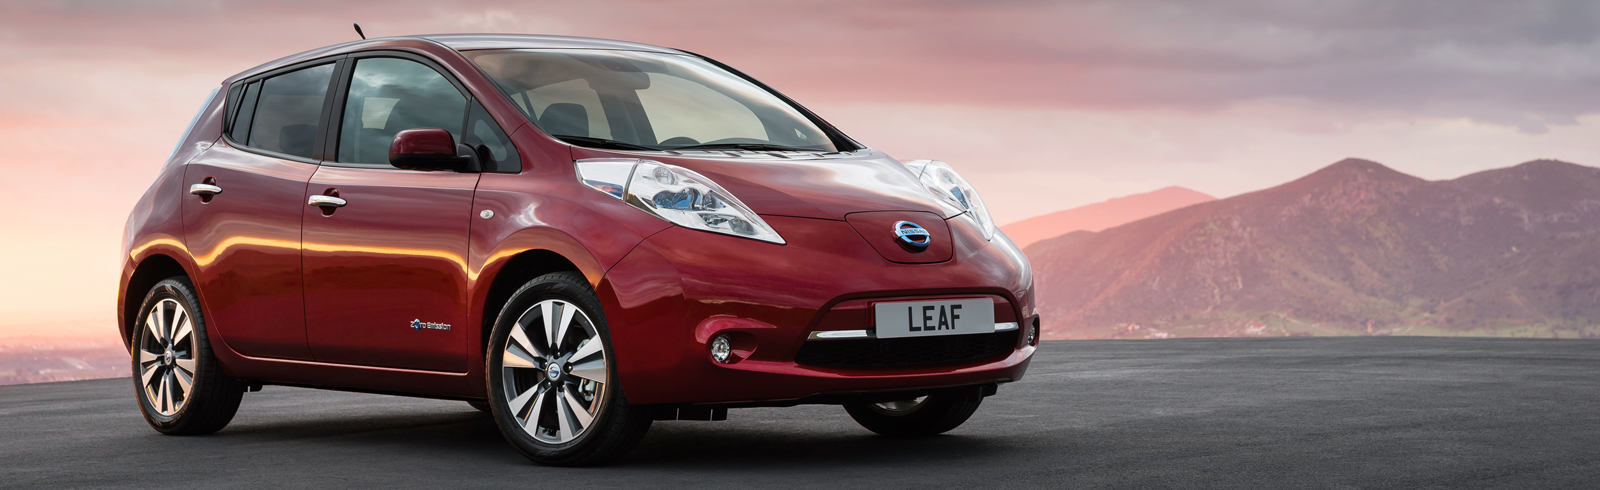 """Nissan LEAF named """"Best Used Electric Car"""" in Electrifying.com Awards 2021"""